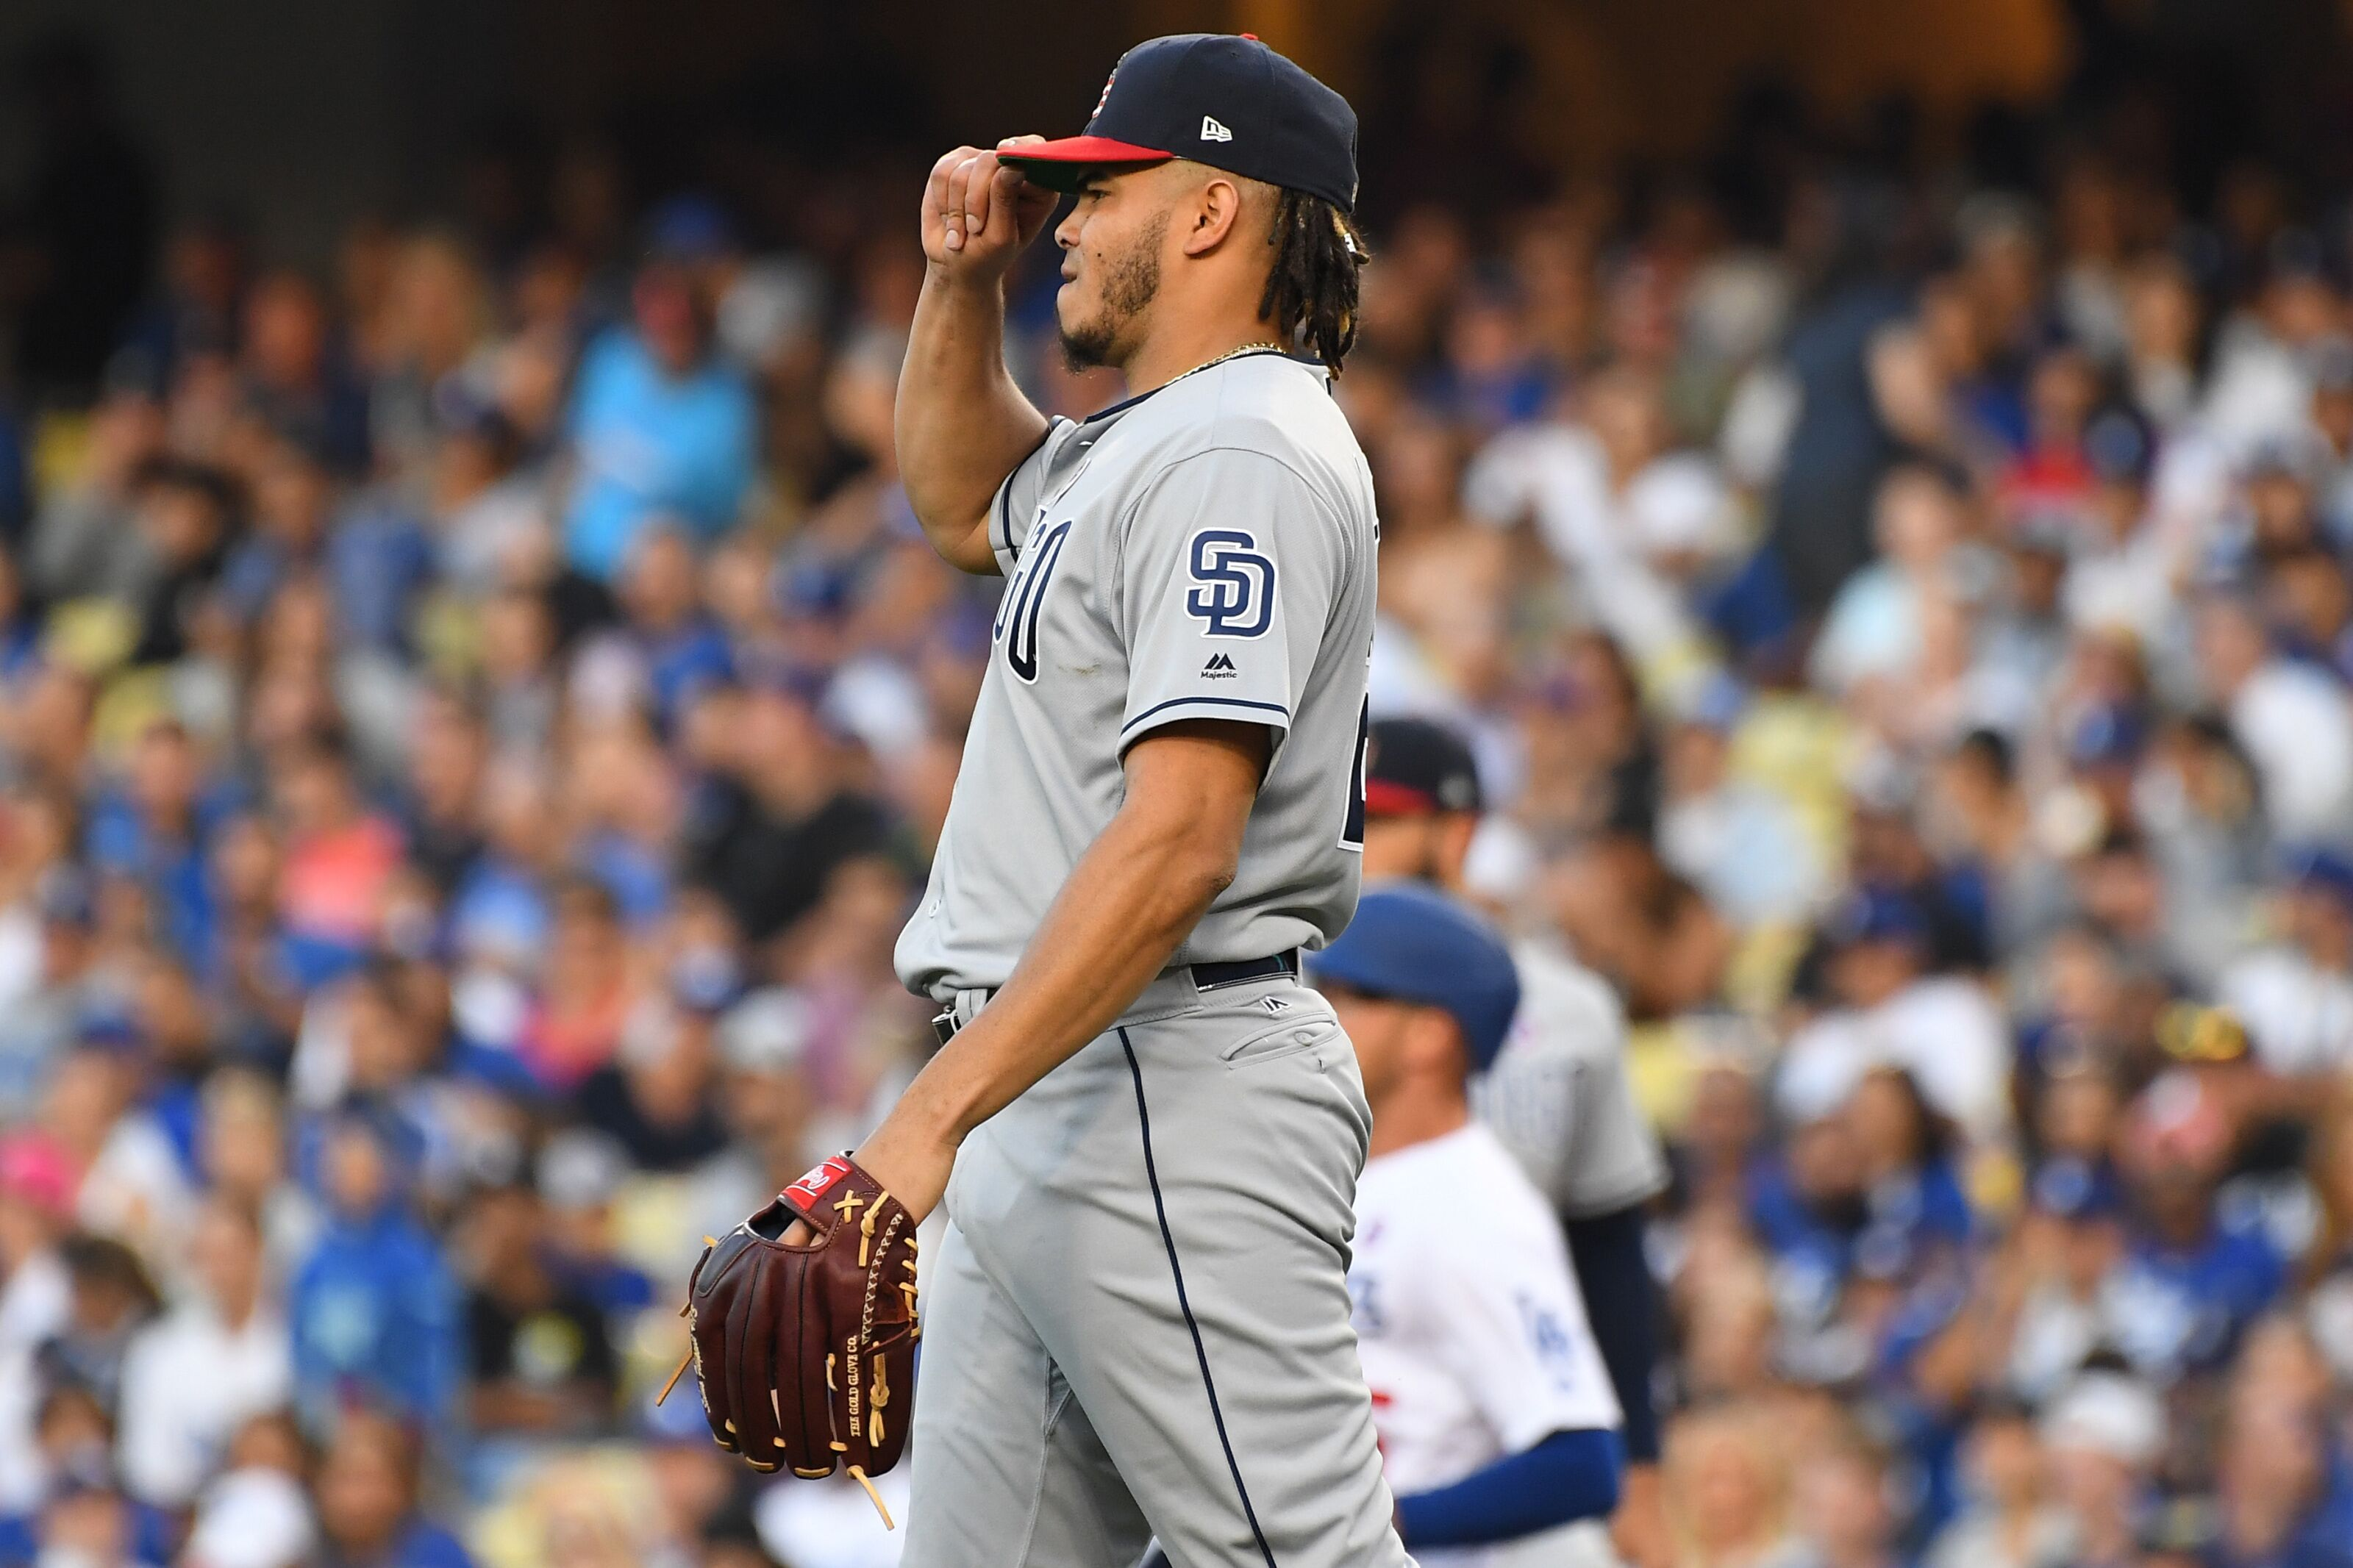 San Diego Padres: 3 takeaways from the Game 1 loss to the Los Angeles Dodgers